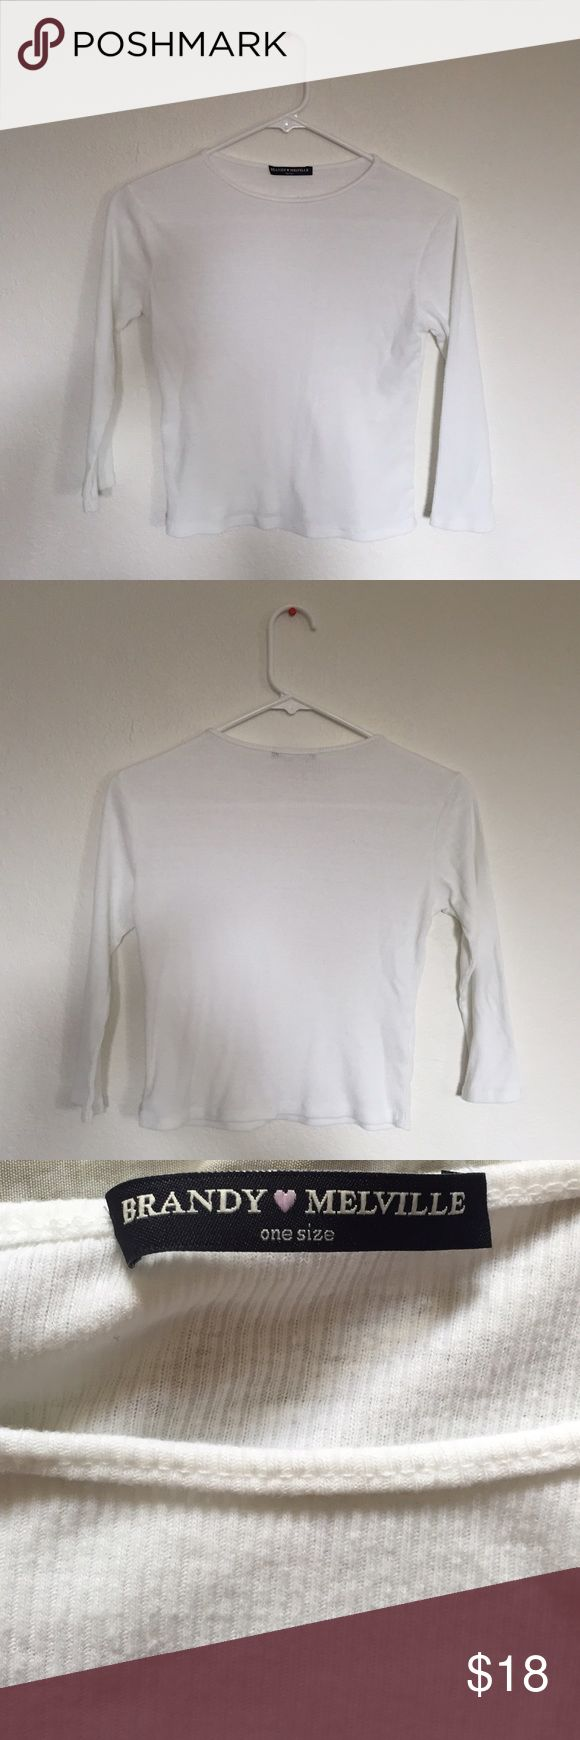 Brandy Melville White Long Sleeve Top A really cute and casual white long sleeve top. It's somewhat cropped and sleeves are about 3/4 long. Never worn and brand new. Fits xs-m! Brandy Melville Tops Tees - Long Sleeve